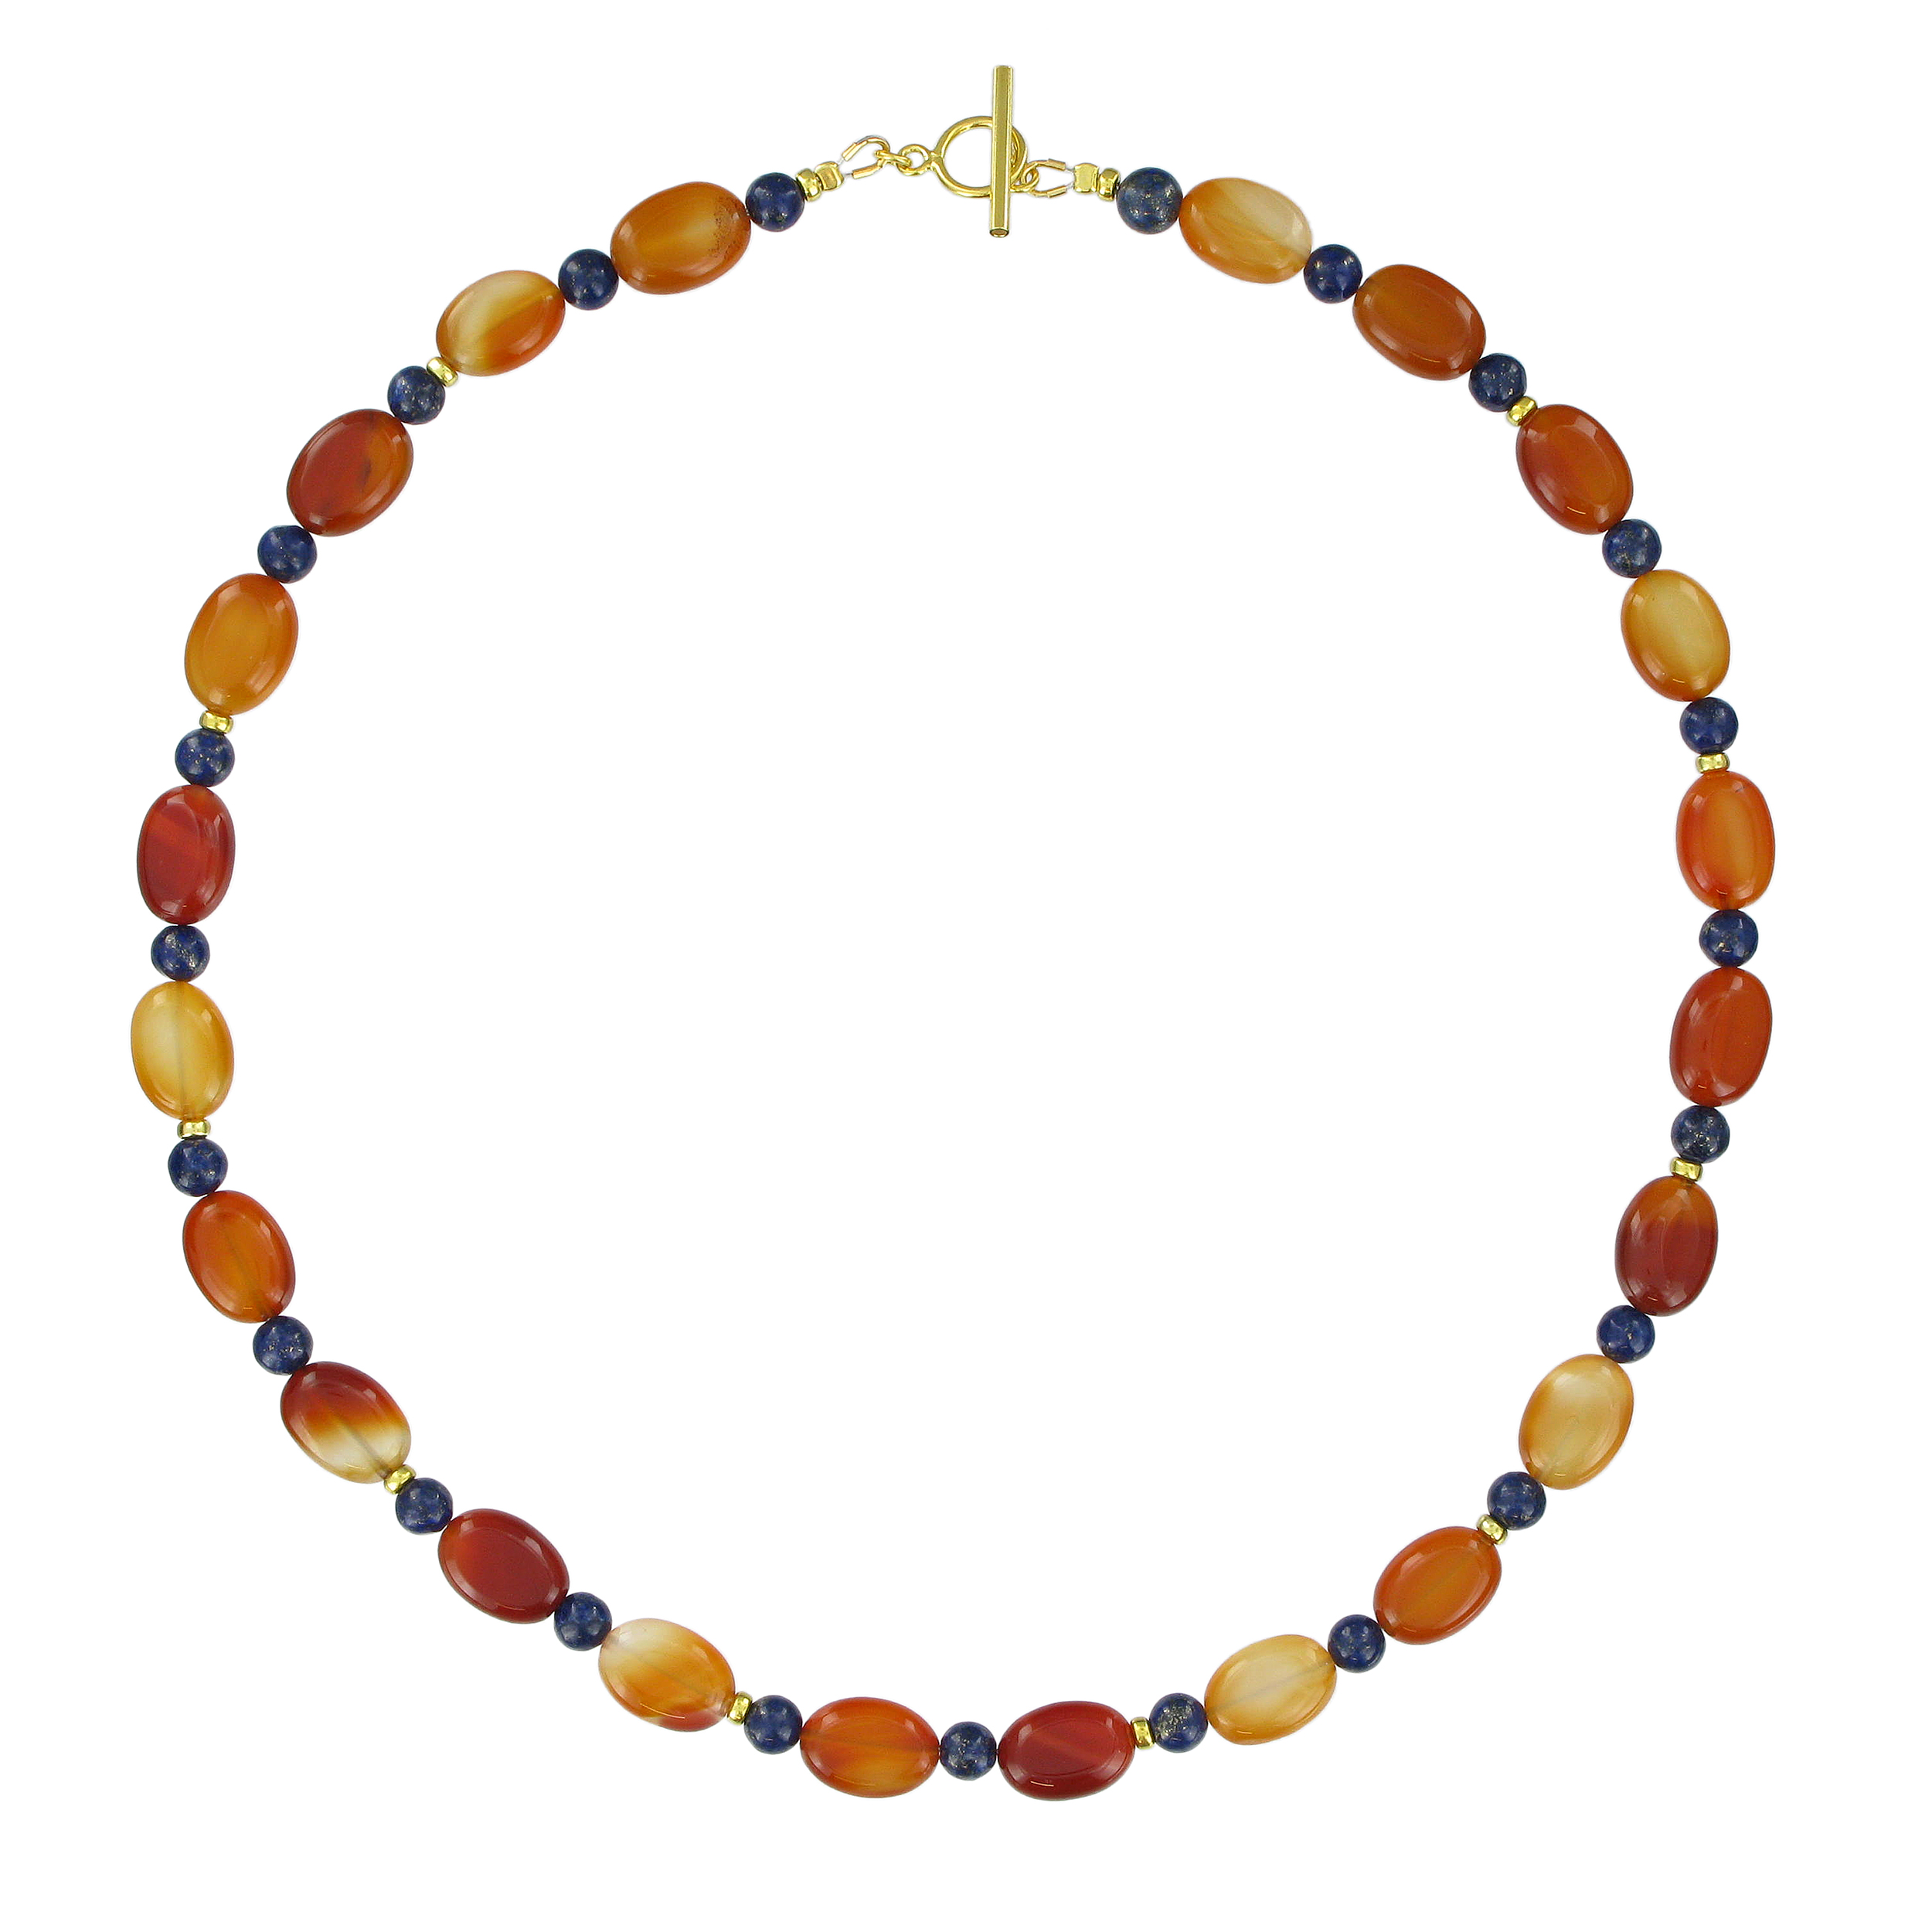 Lapis and carnelian stones necklace